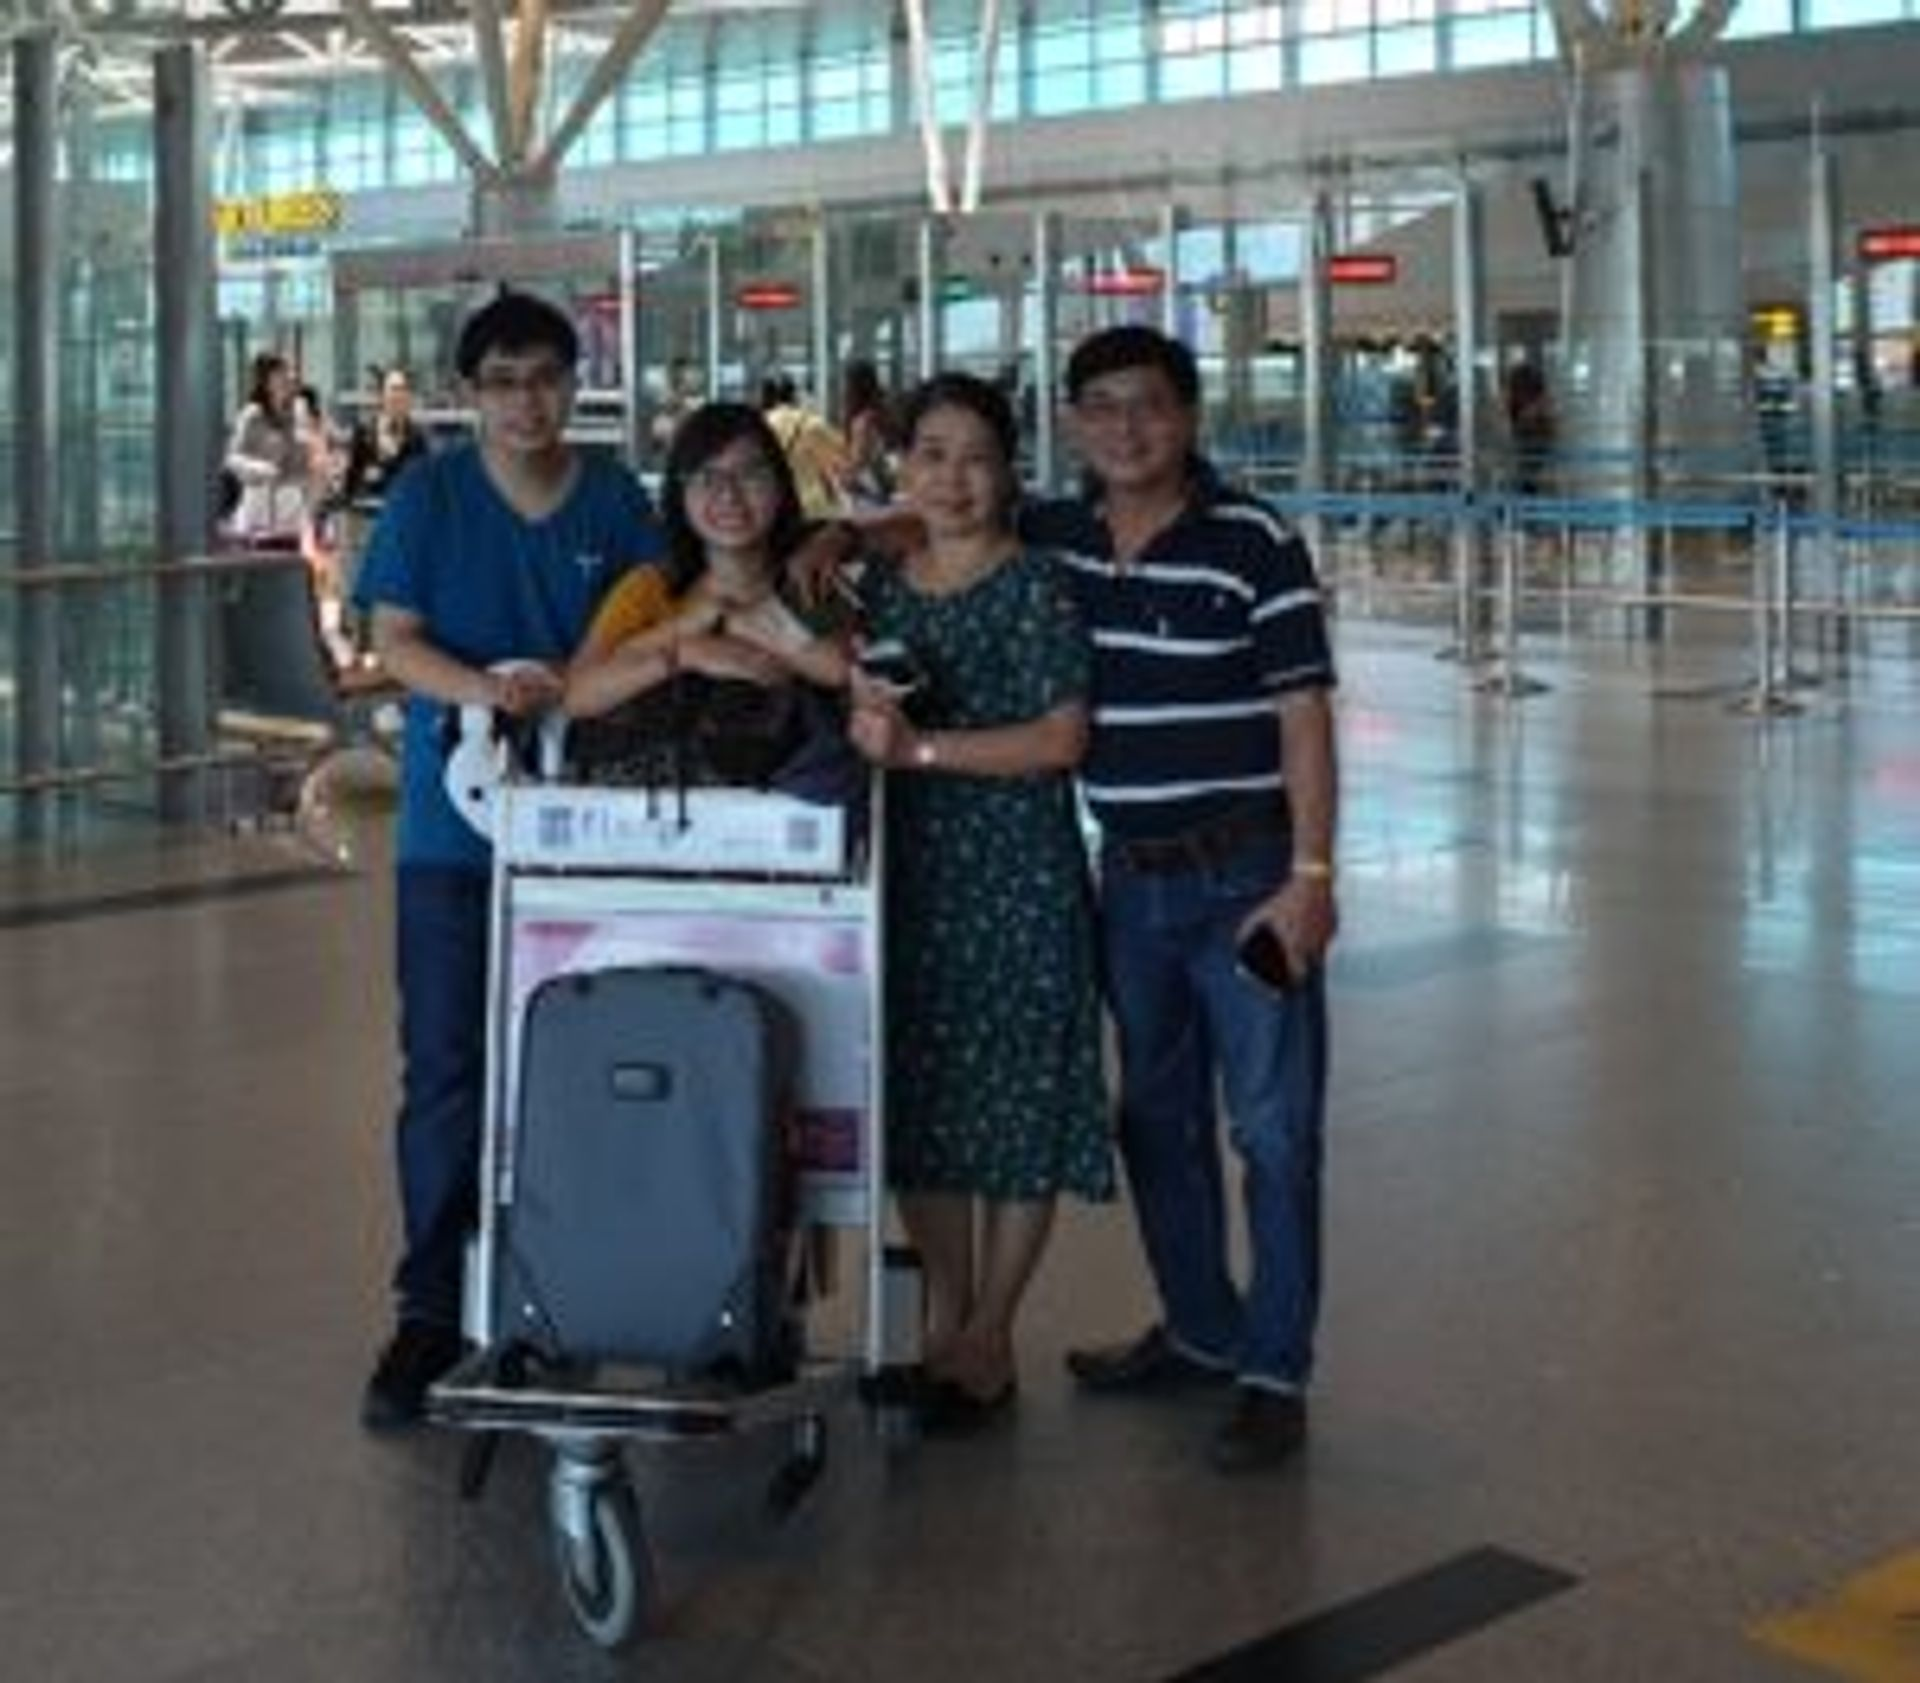 A family posing for a photo in an airport.